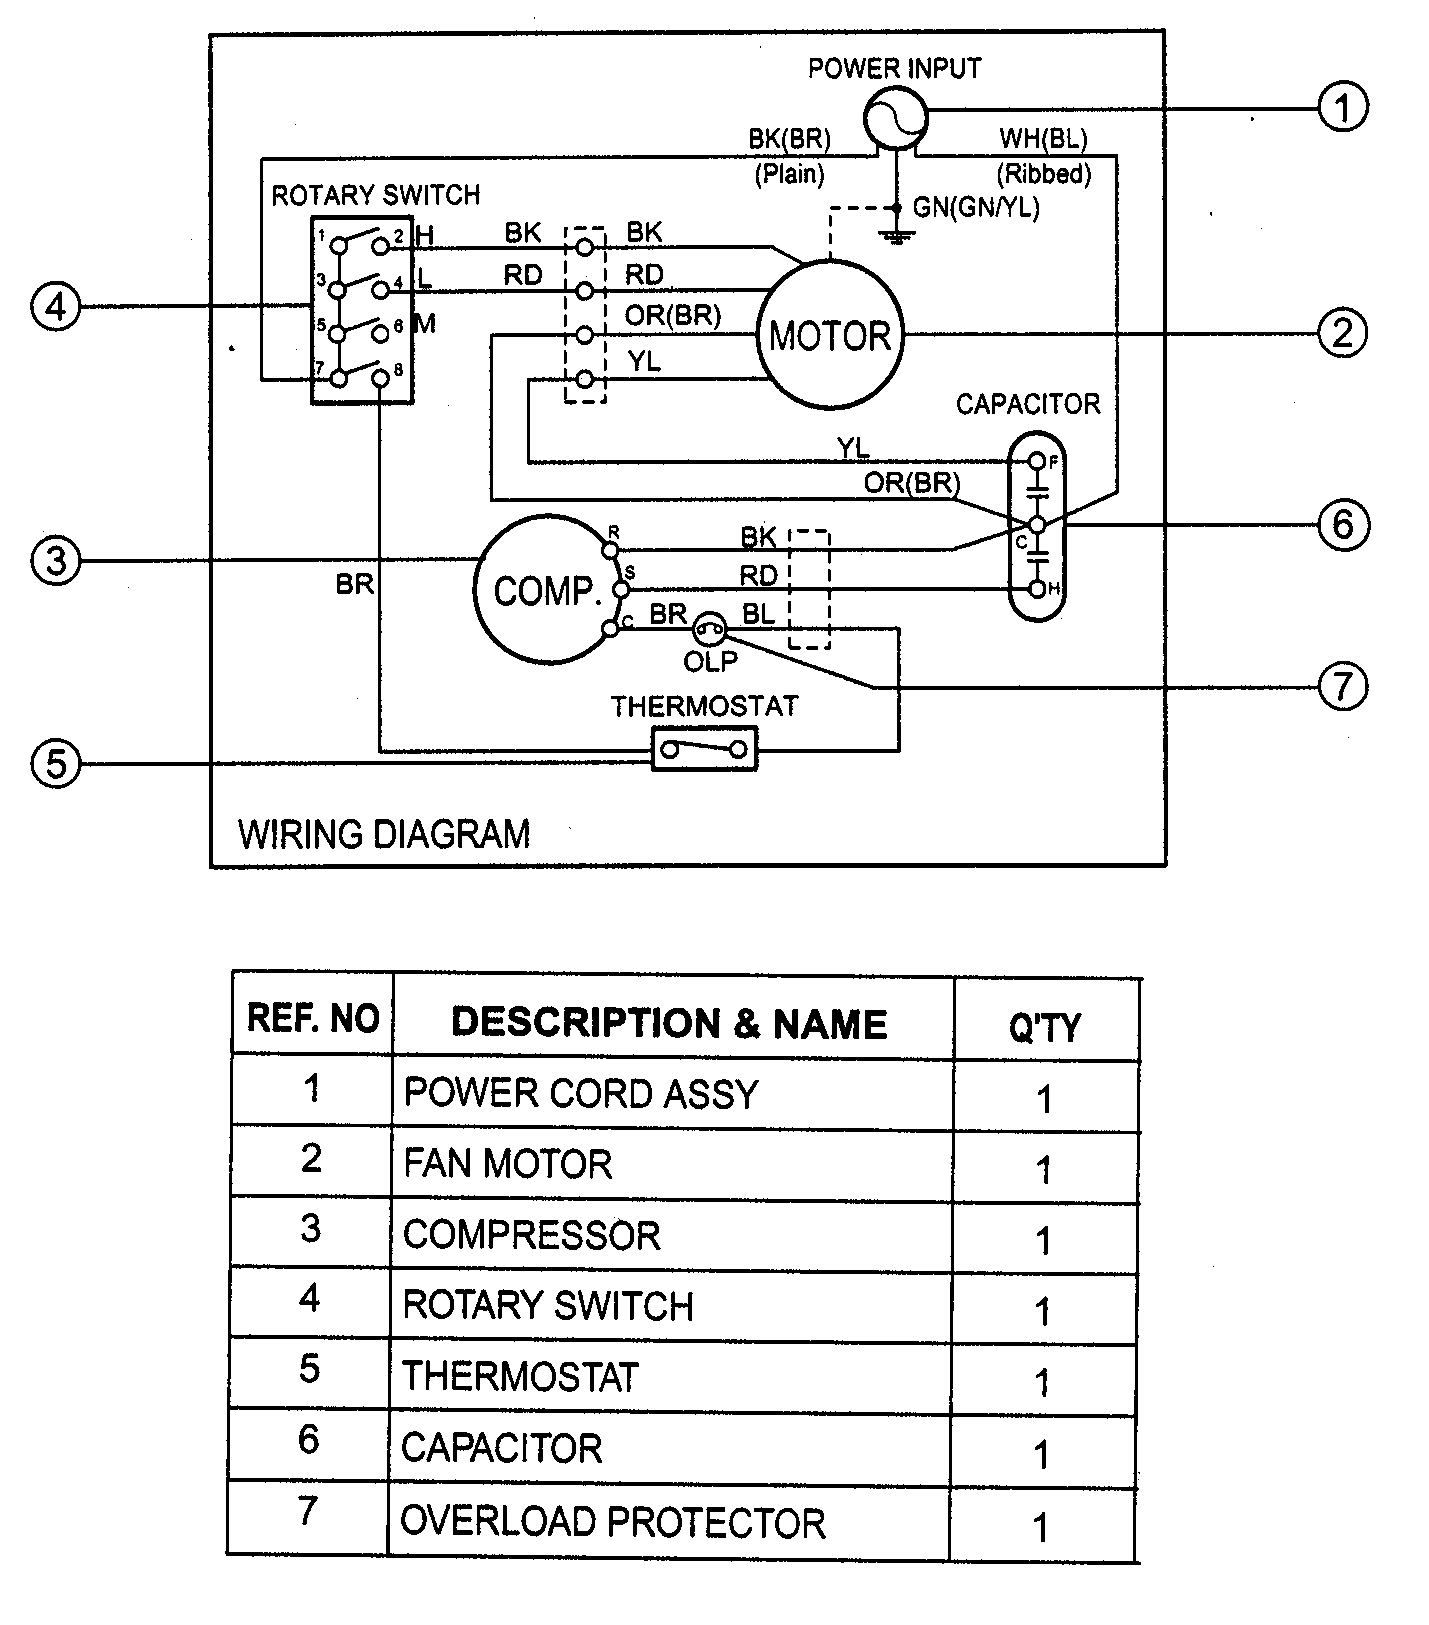 goodman wiring diagram air conditioner problems freightliner diagrams for m2 2000 f150 where is fuse html autos post